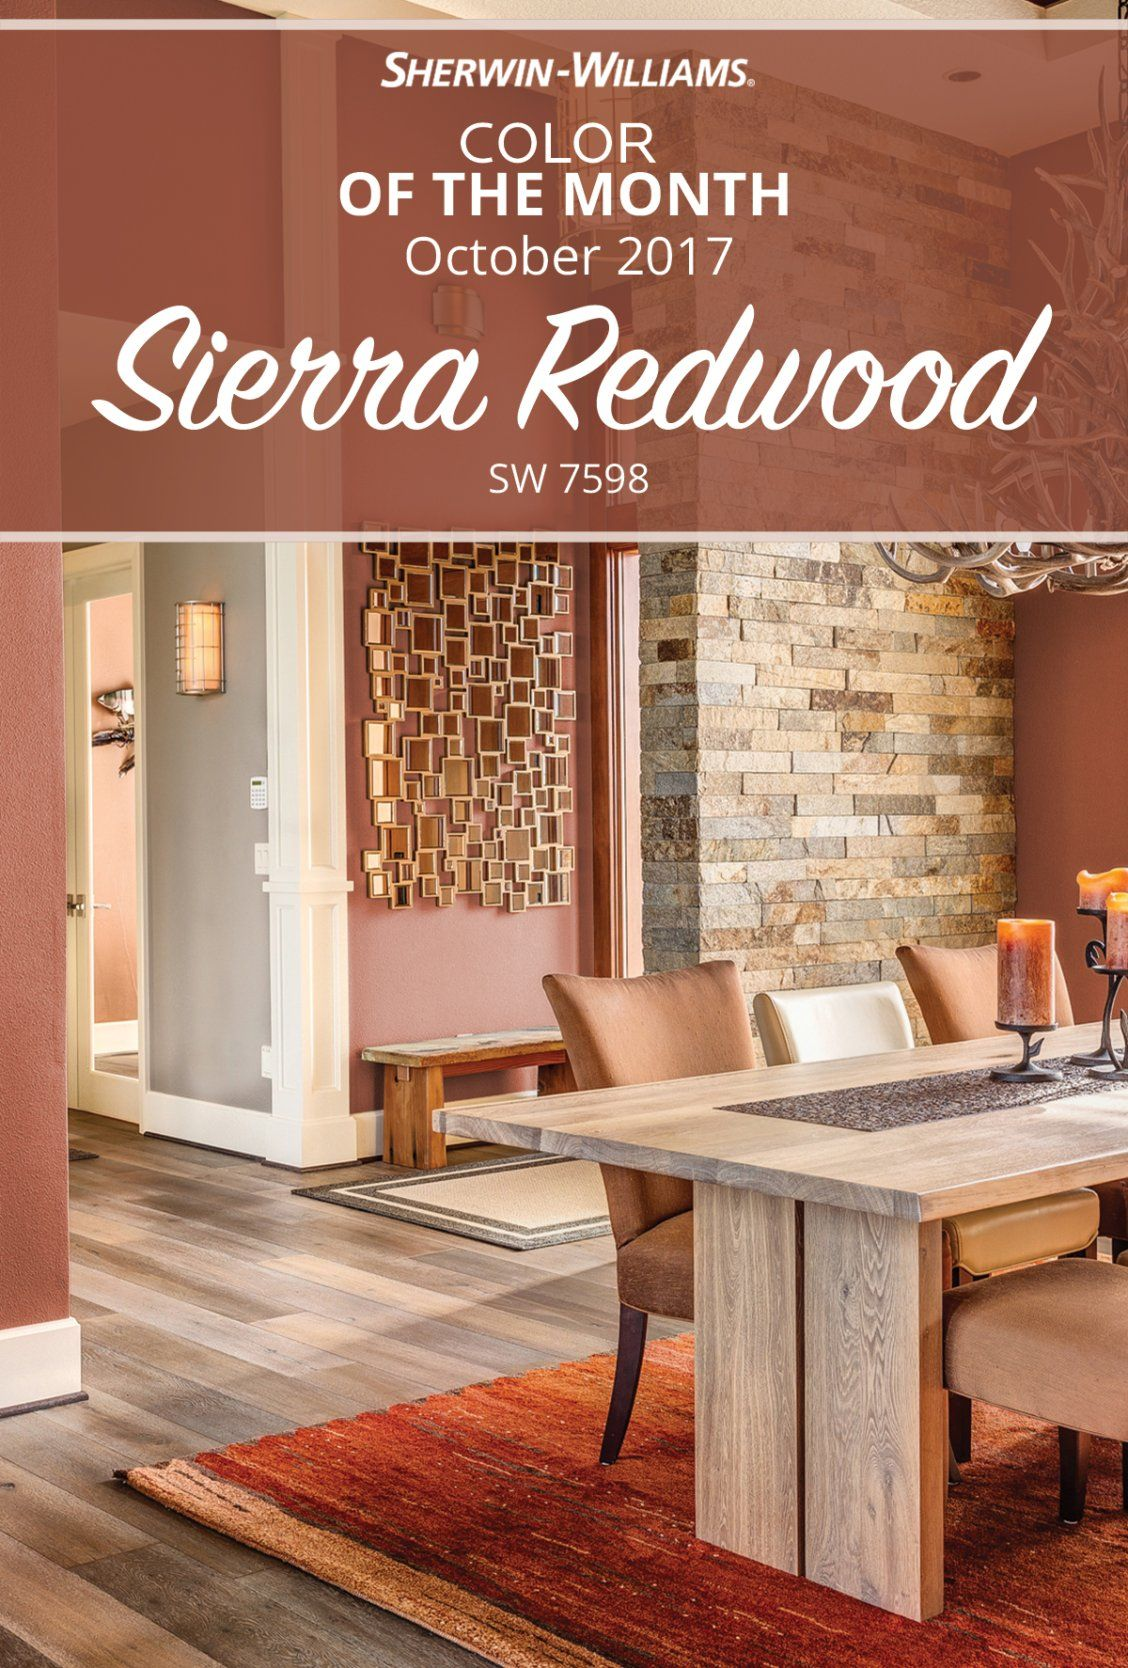 Deep Rich And Mesmerizing The October Color Of The Month 2017 Draws Us In With Its Earthy Warm Sherwin Williams Paint Colors Bright Paint Colors Paint Colors